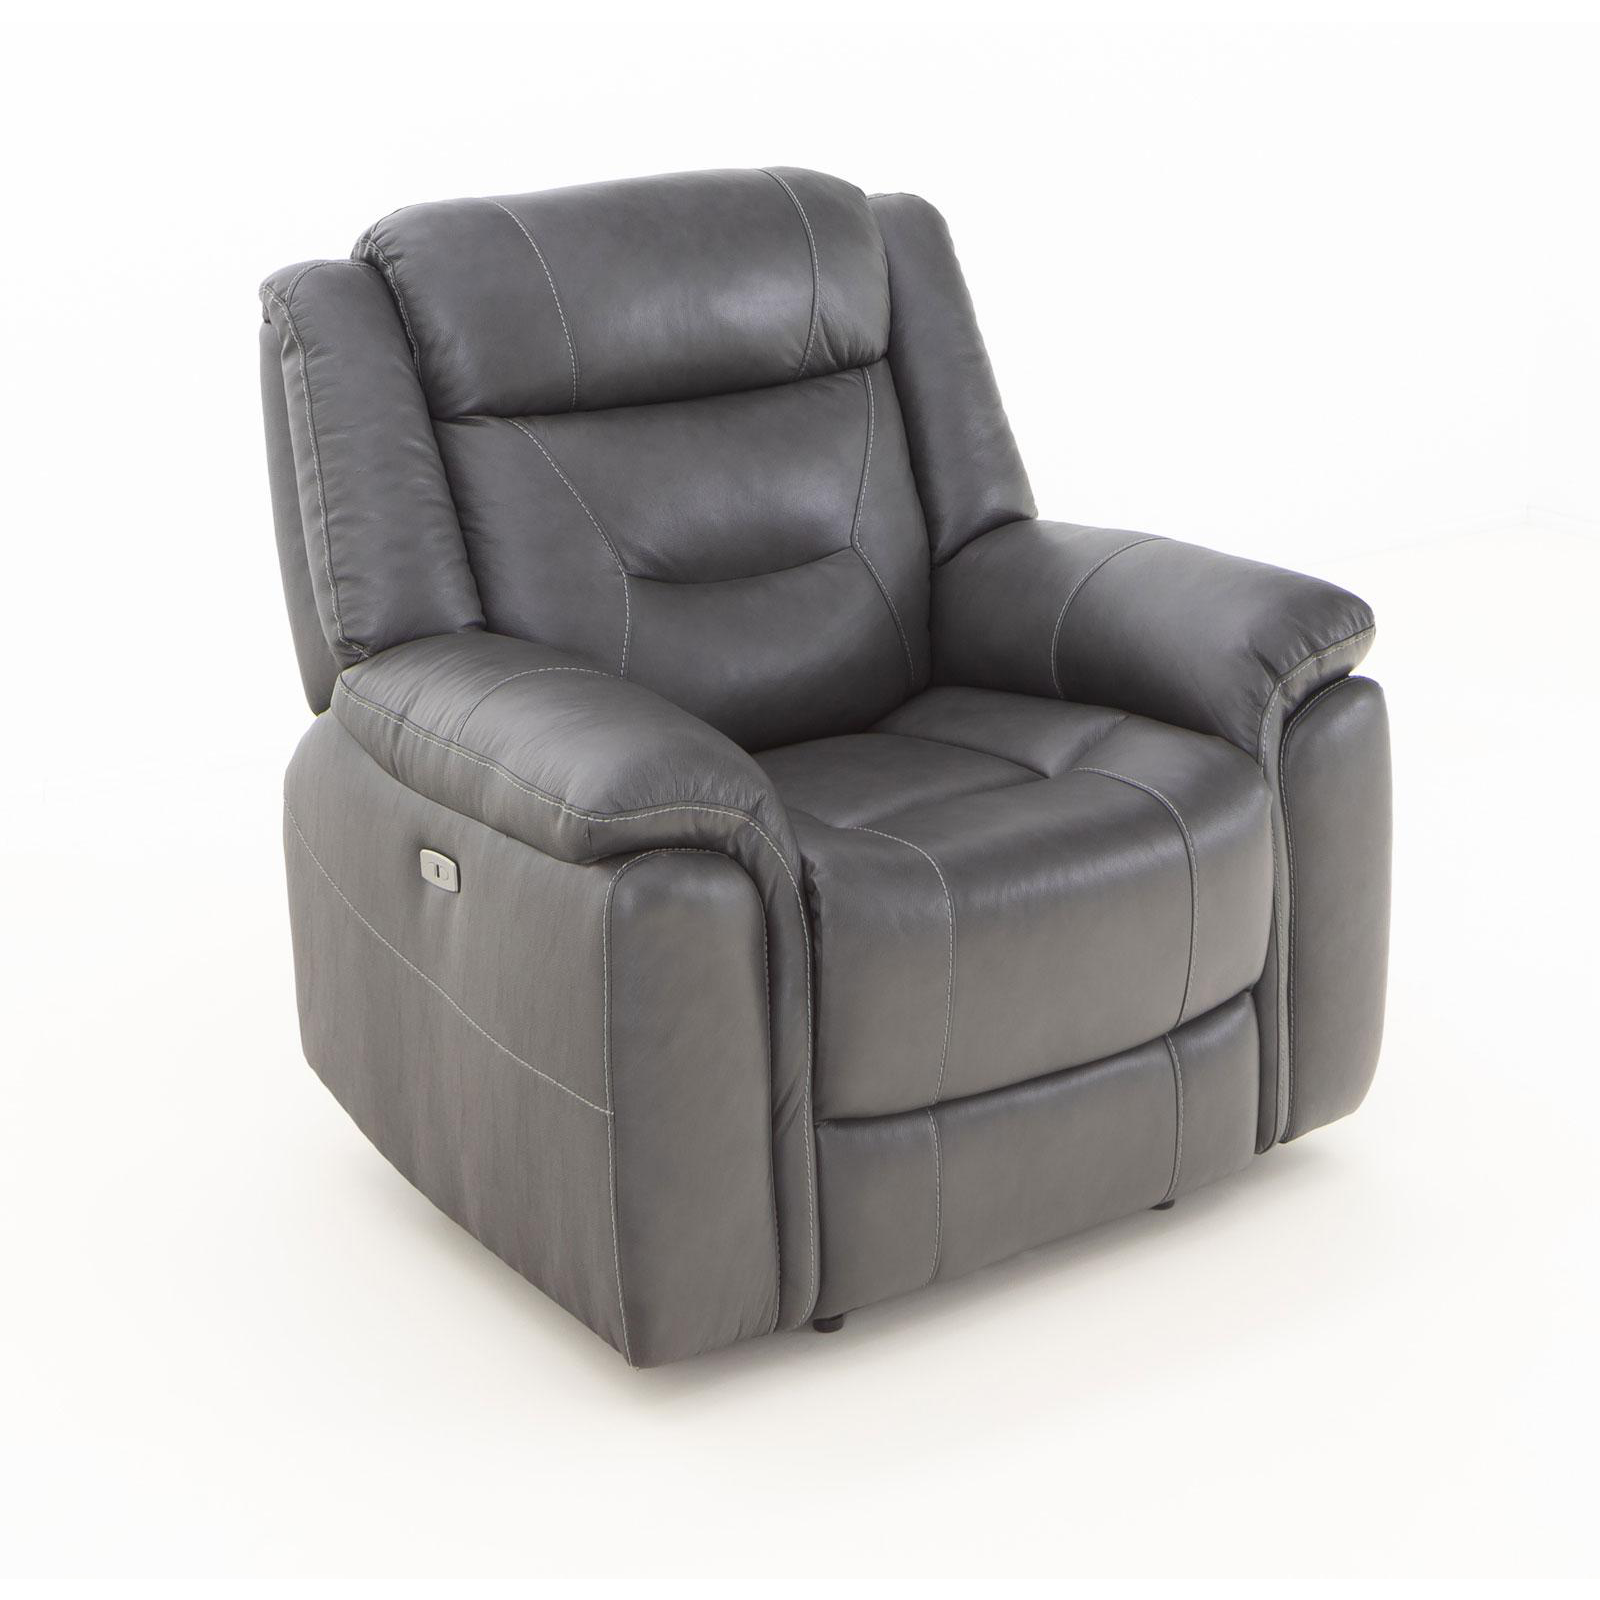 Starry Power Recliner